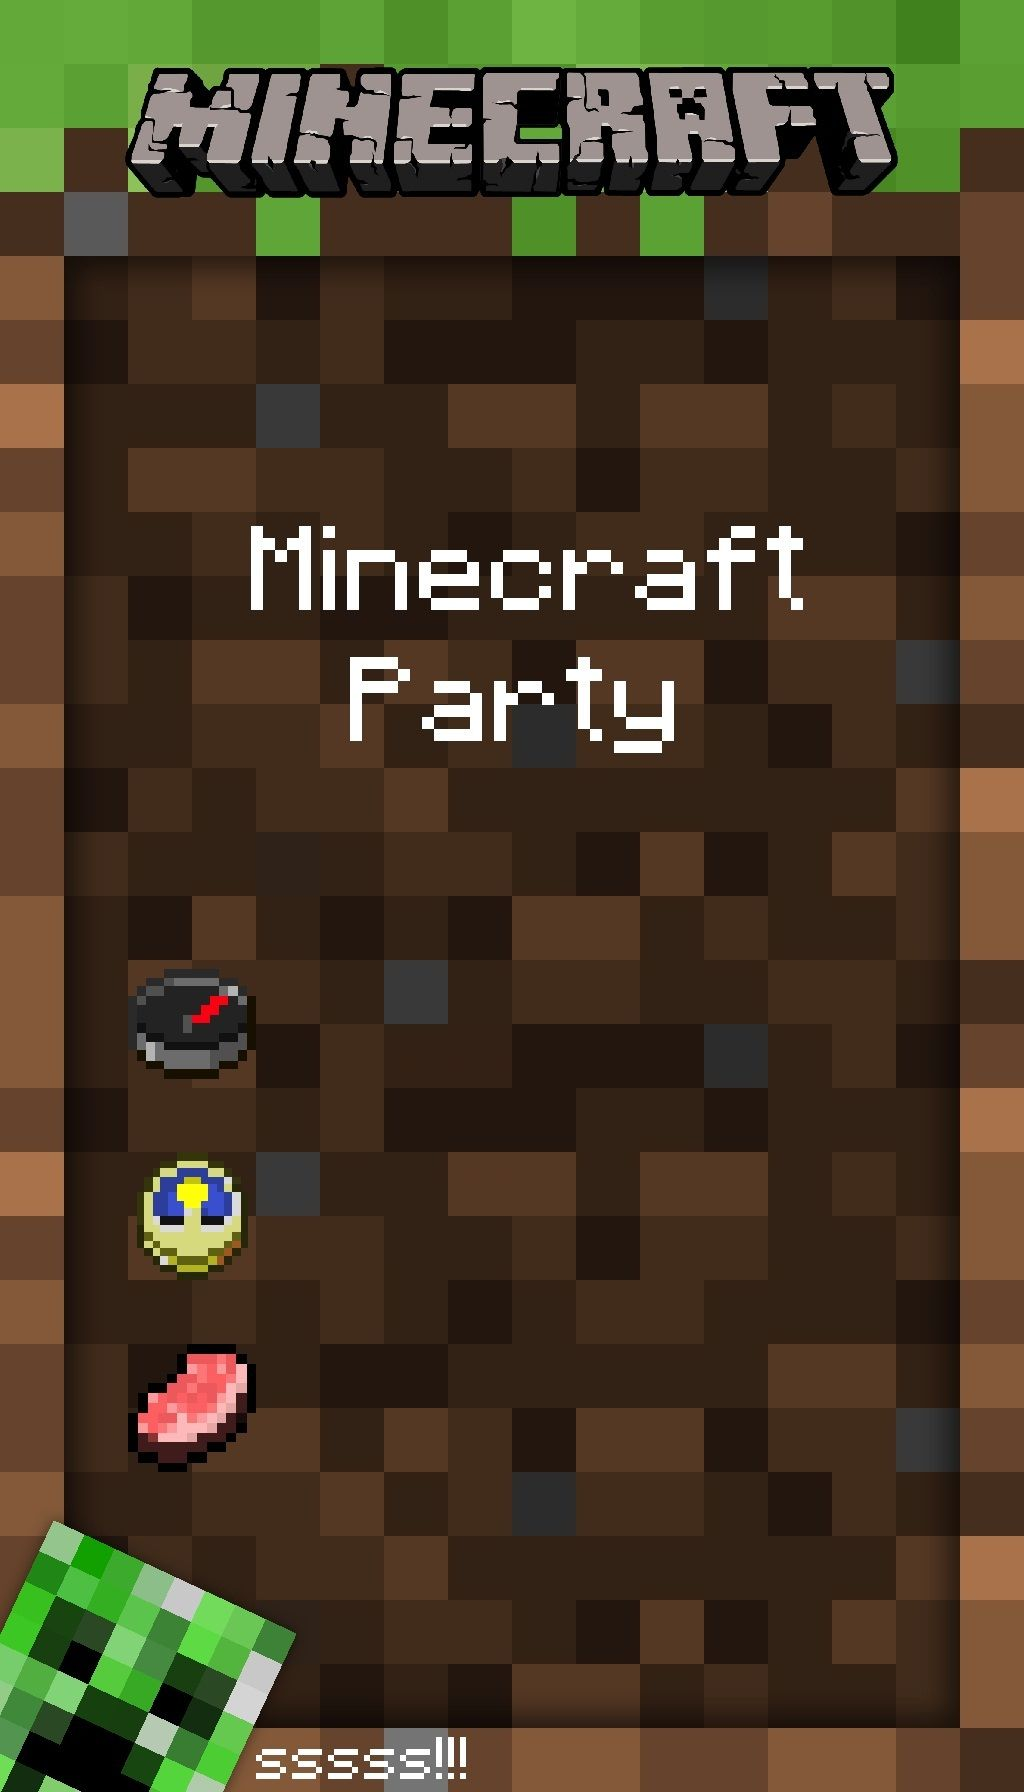 Blank Minecraft Invitation Template